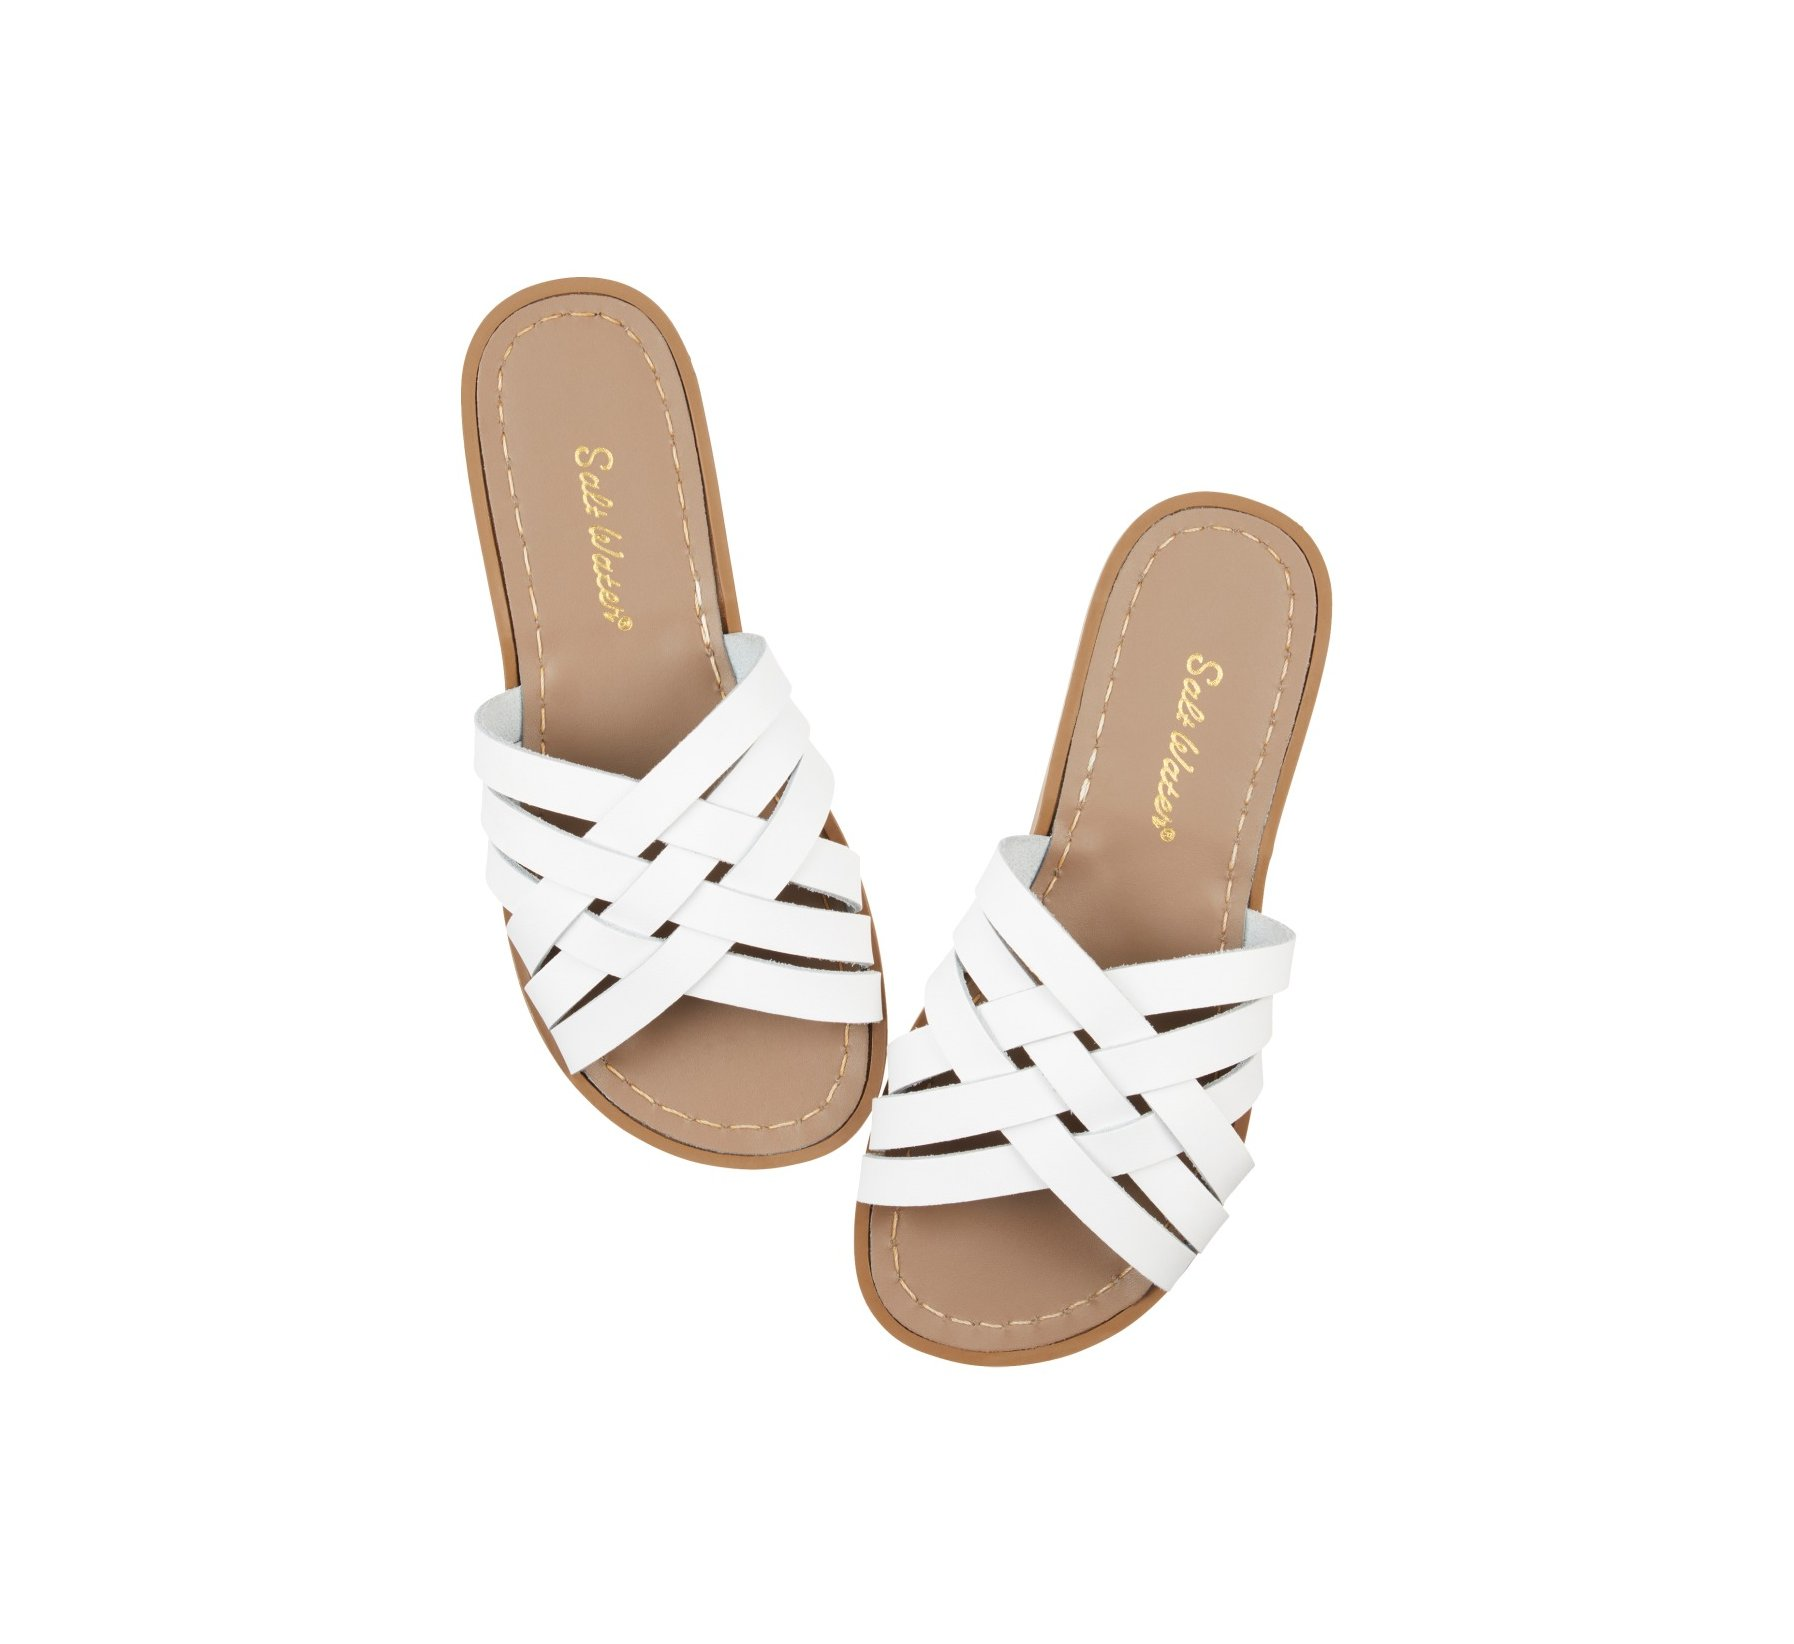 Retro Slide White - Salt Water Sandals